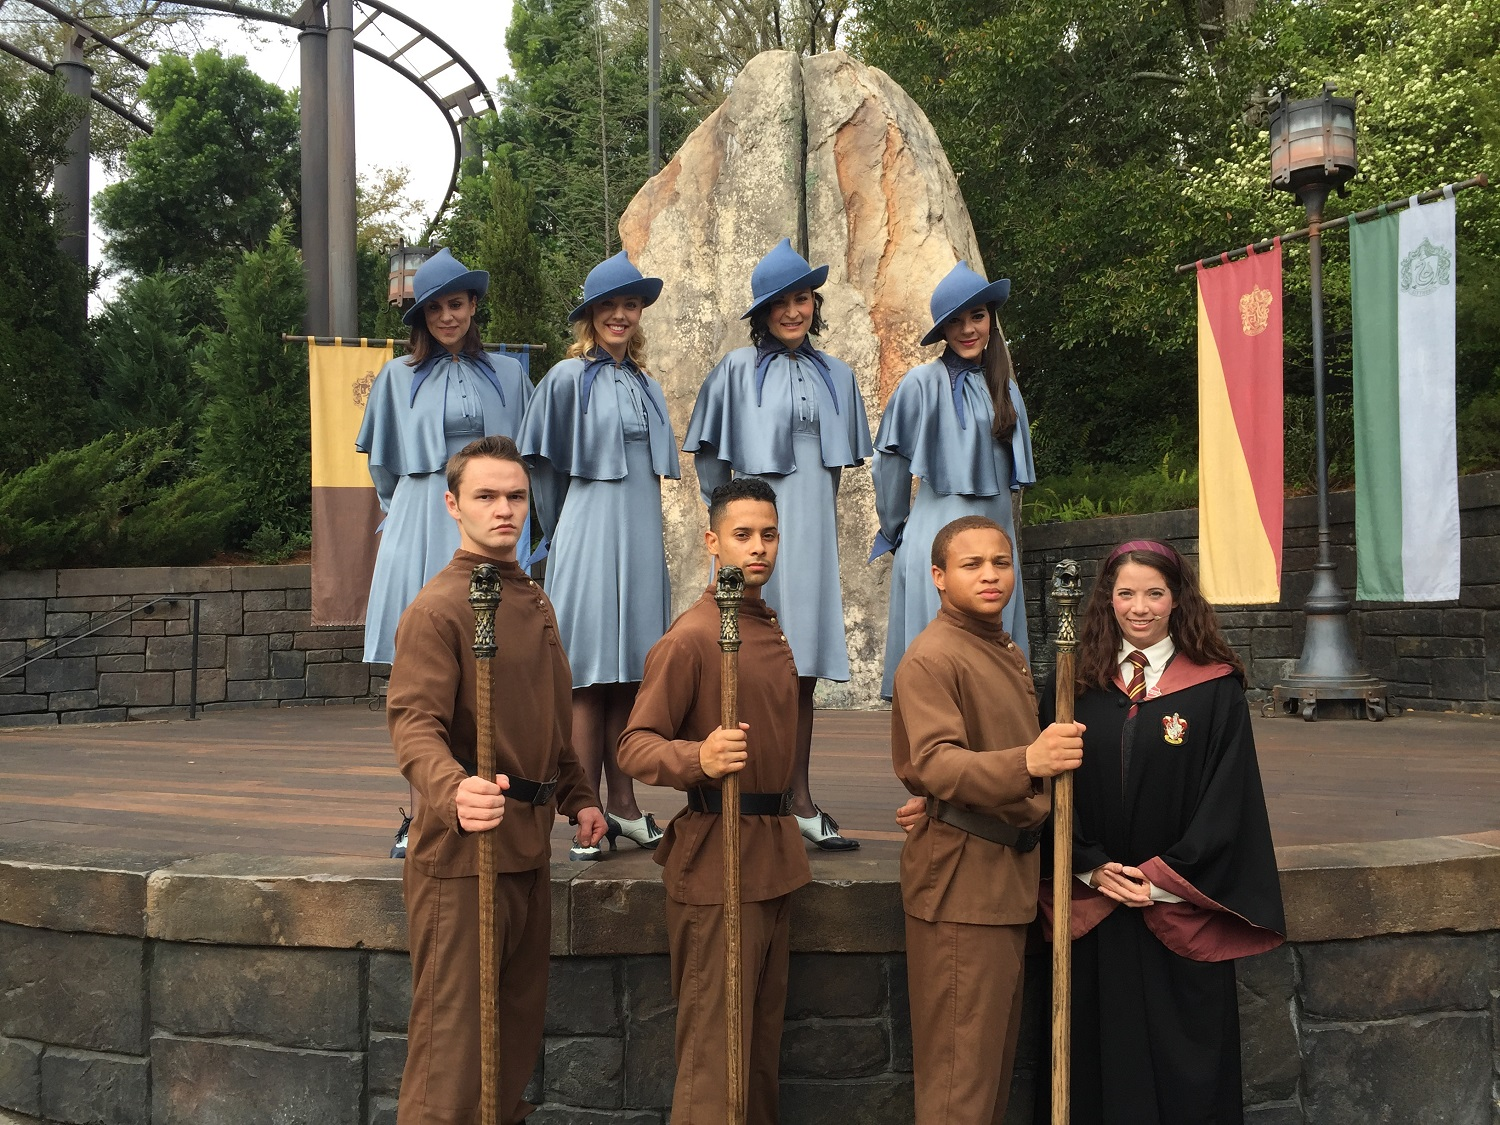 Triwizard Spirit Rally In The Wizarding World Of Harry Potter Uo Fan Guide Having existed since 1294, durmstrang is among the 3 schools that compete in the triwizard tournament. triwizard spirit rally in the wizarding